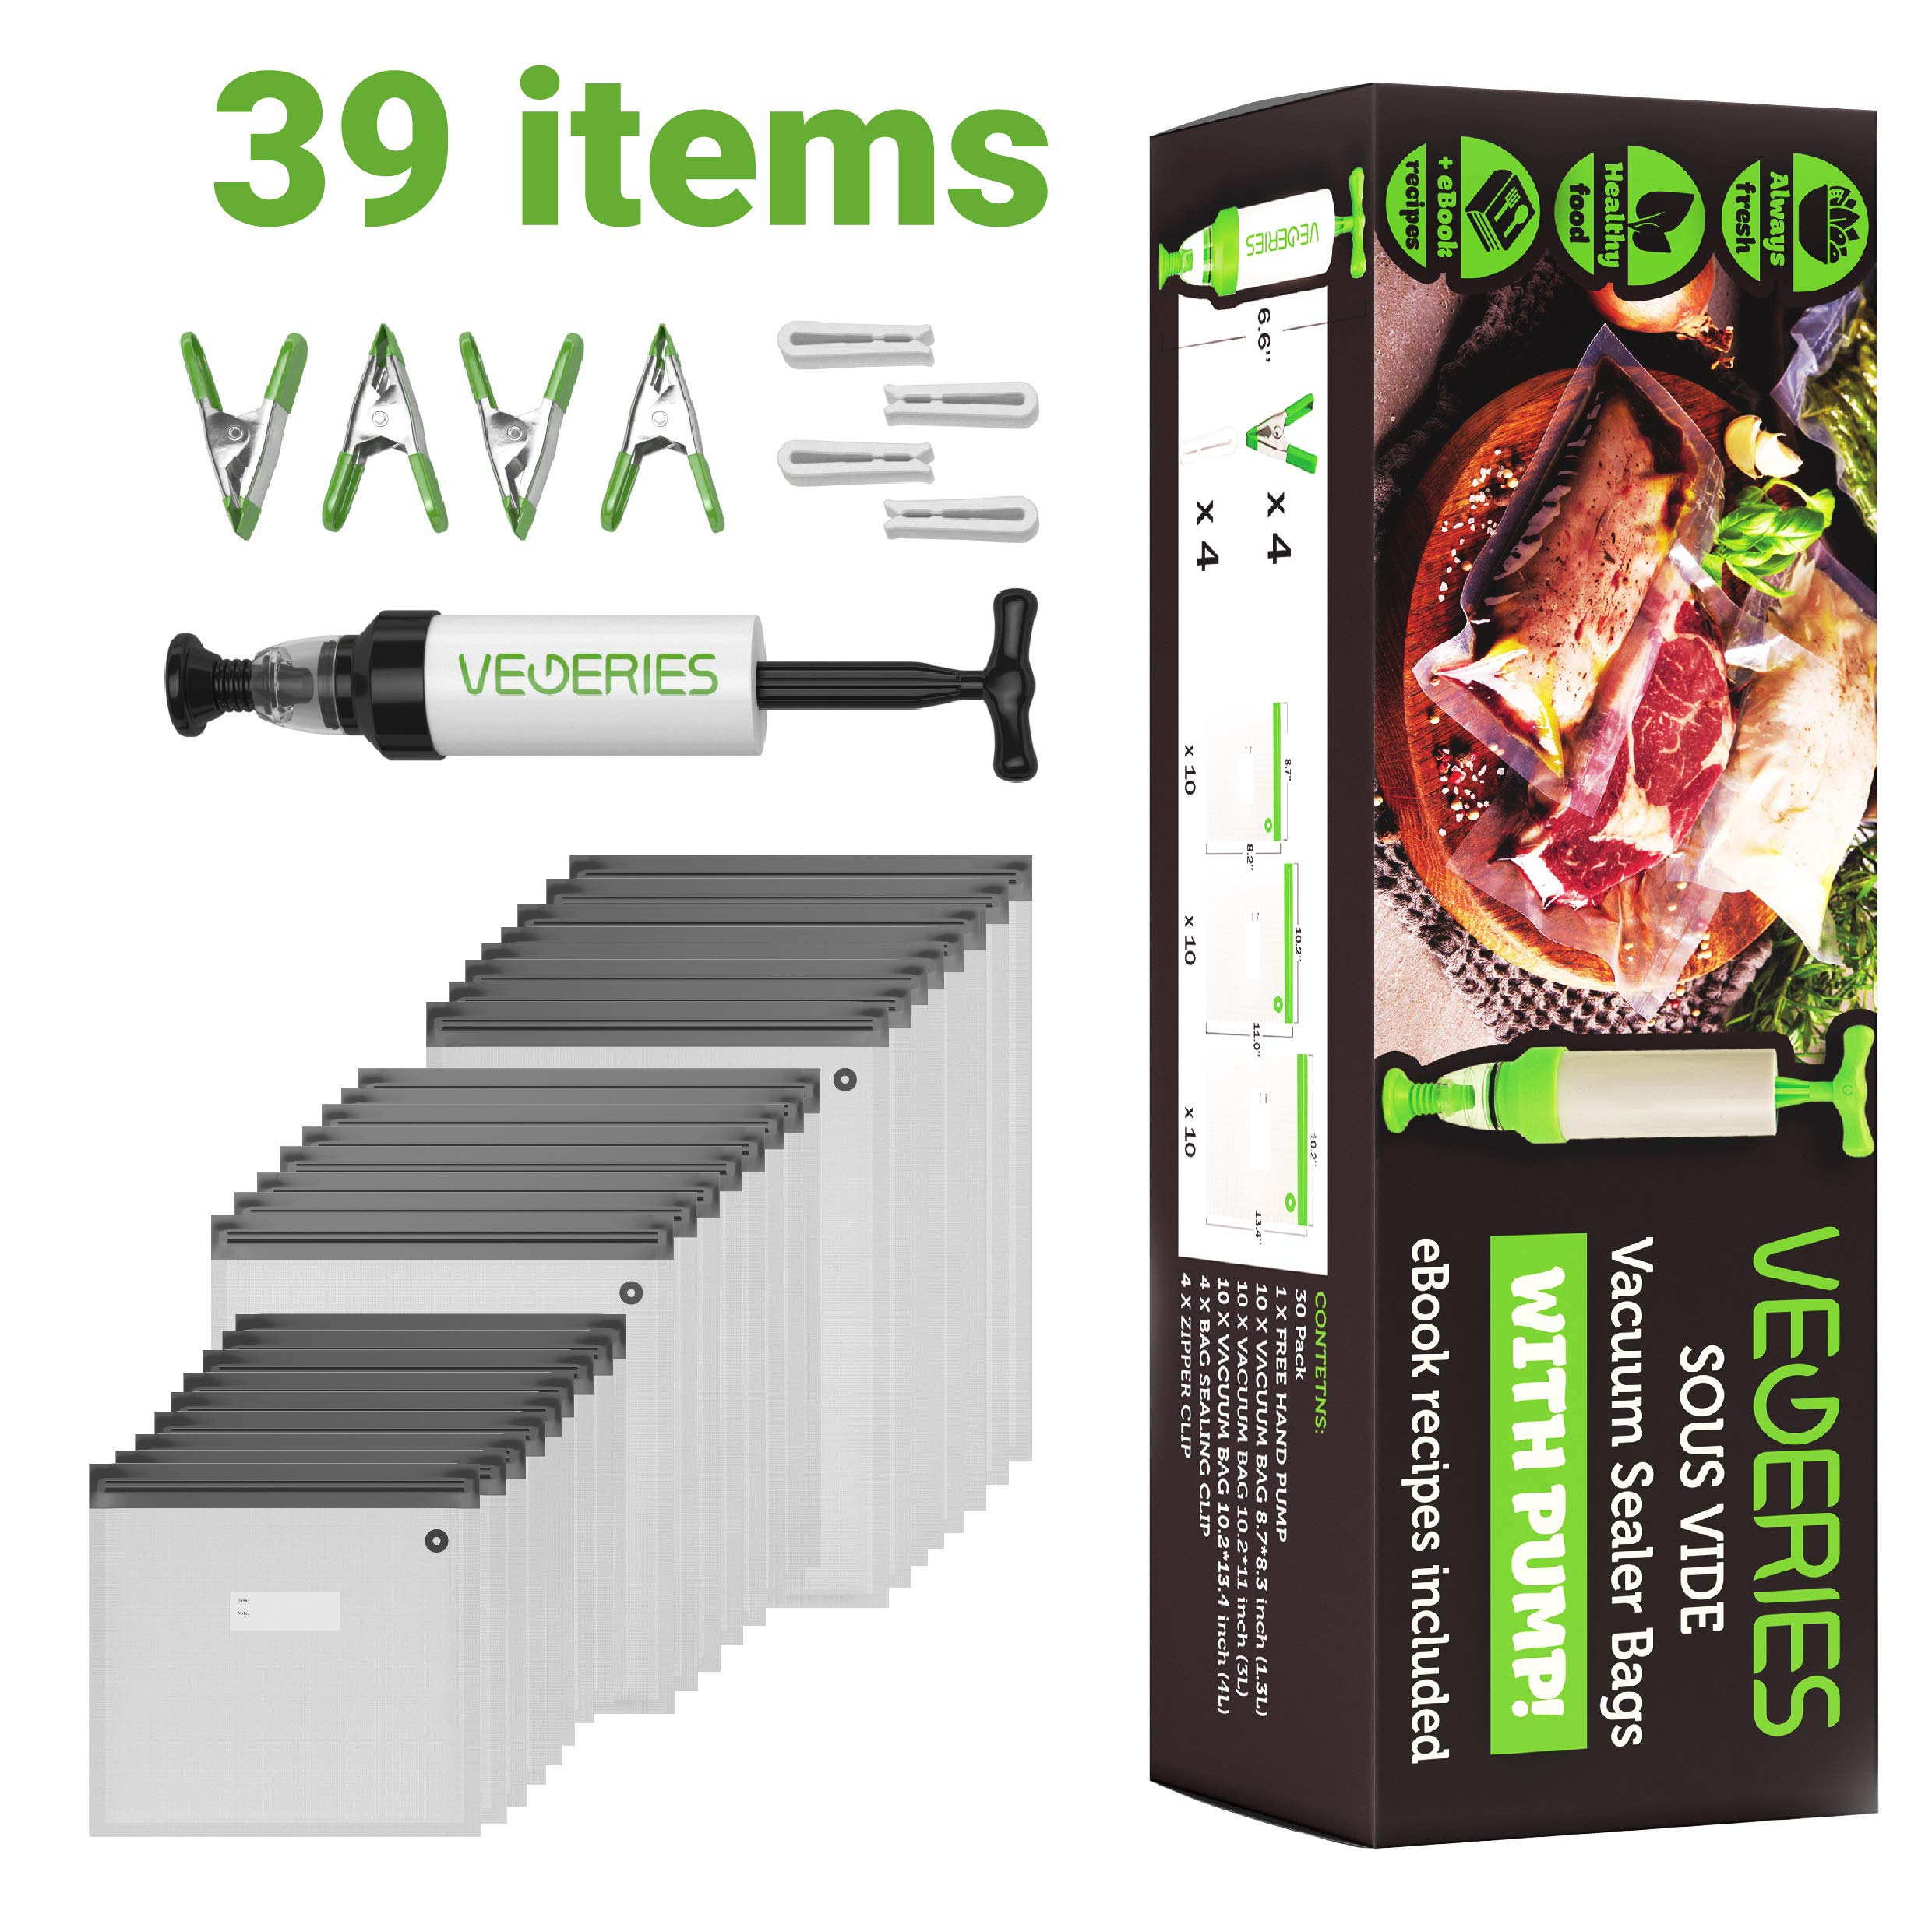 Sous Vide Bags 30 Reusable Vacuum Food Storage Bags for Anova and Joule Cookers - 3 sizes Sous Vide Bag Kit with Pump - 4 Sealing Clips - 4 Sous Vide Bag Clips for Food Storage and Sous Vide Cooking by VEGERIES